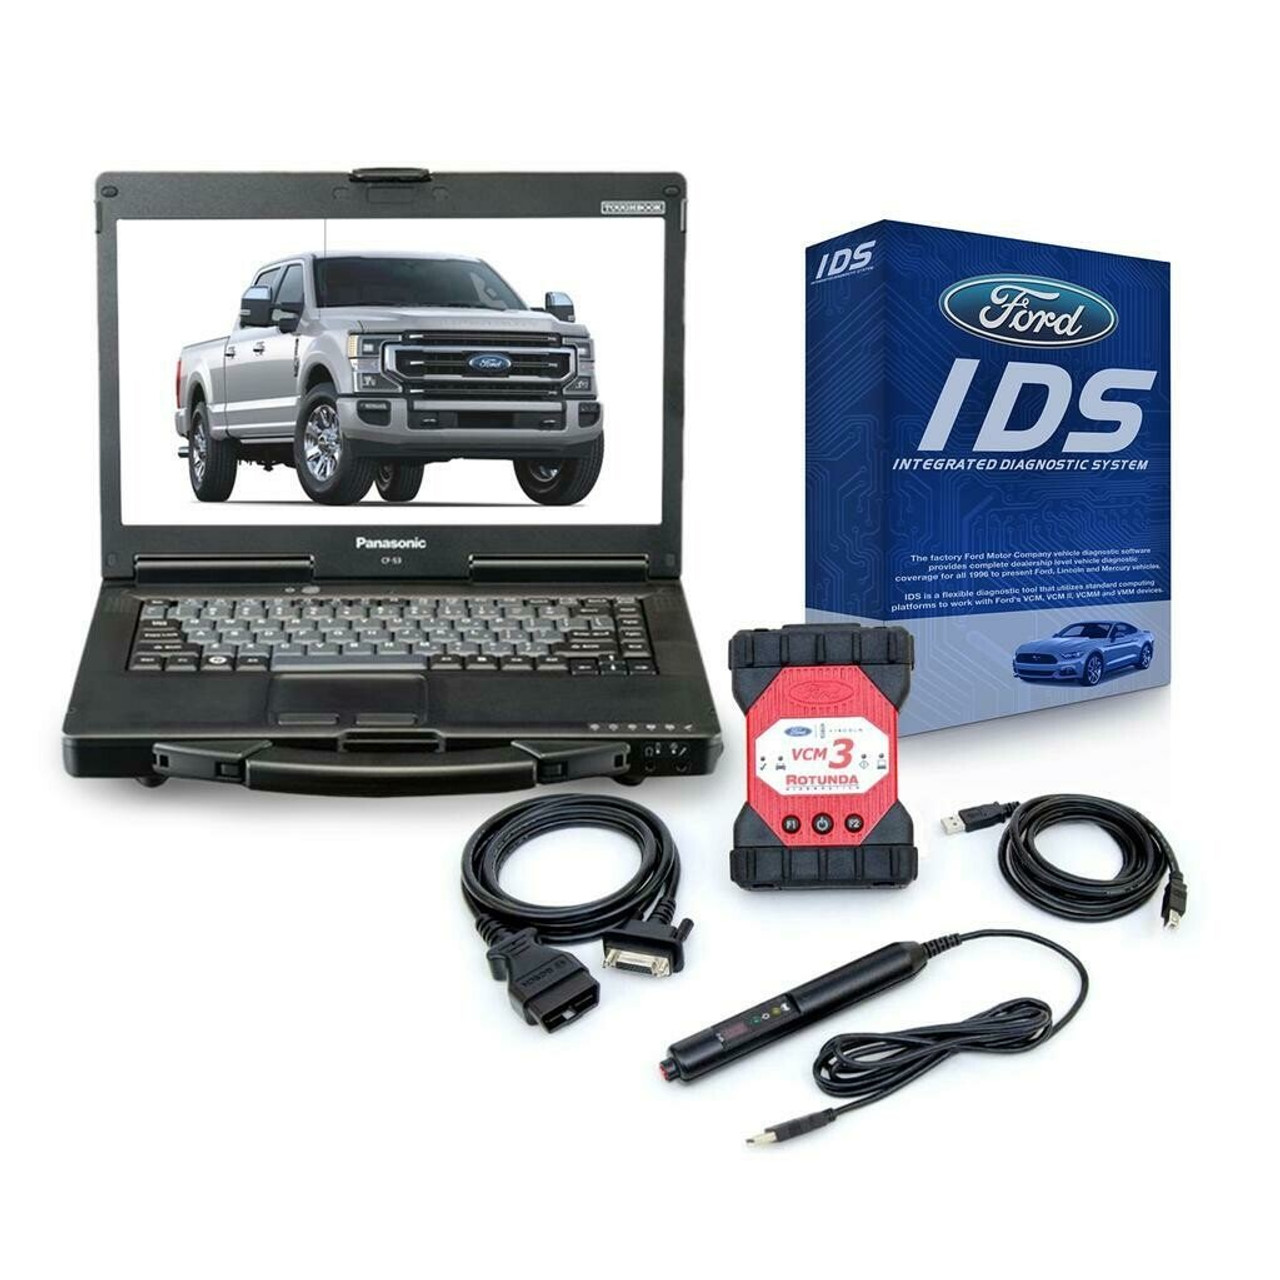 Ford VCM 3 Toughbook Package with IDS